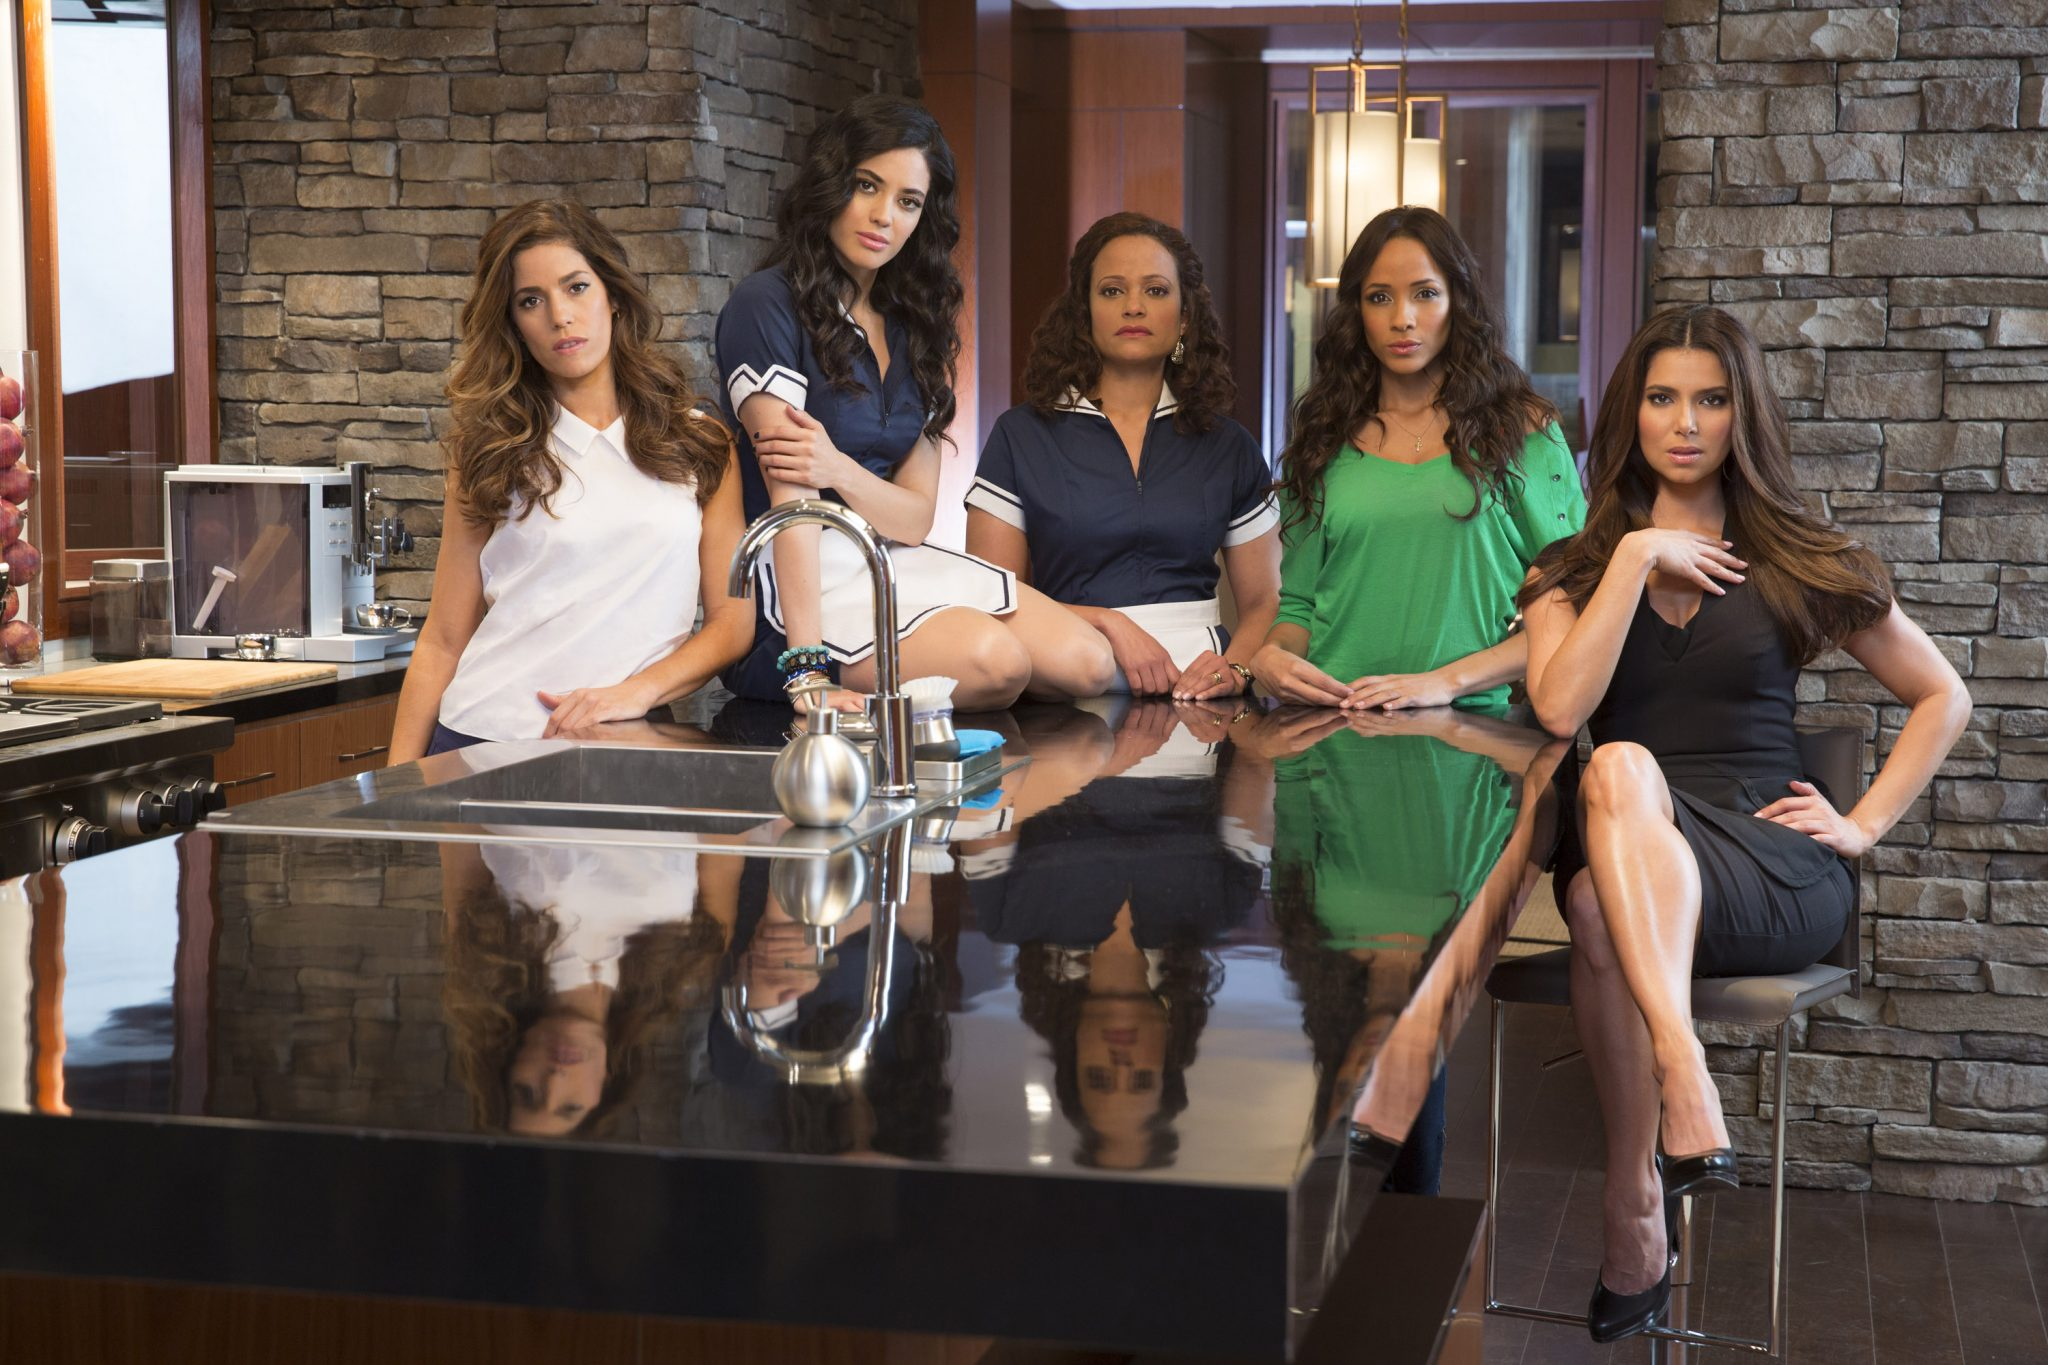 Devious maids_04112013_JF_0385r